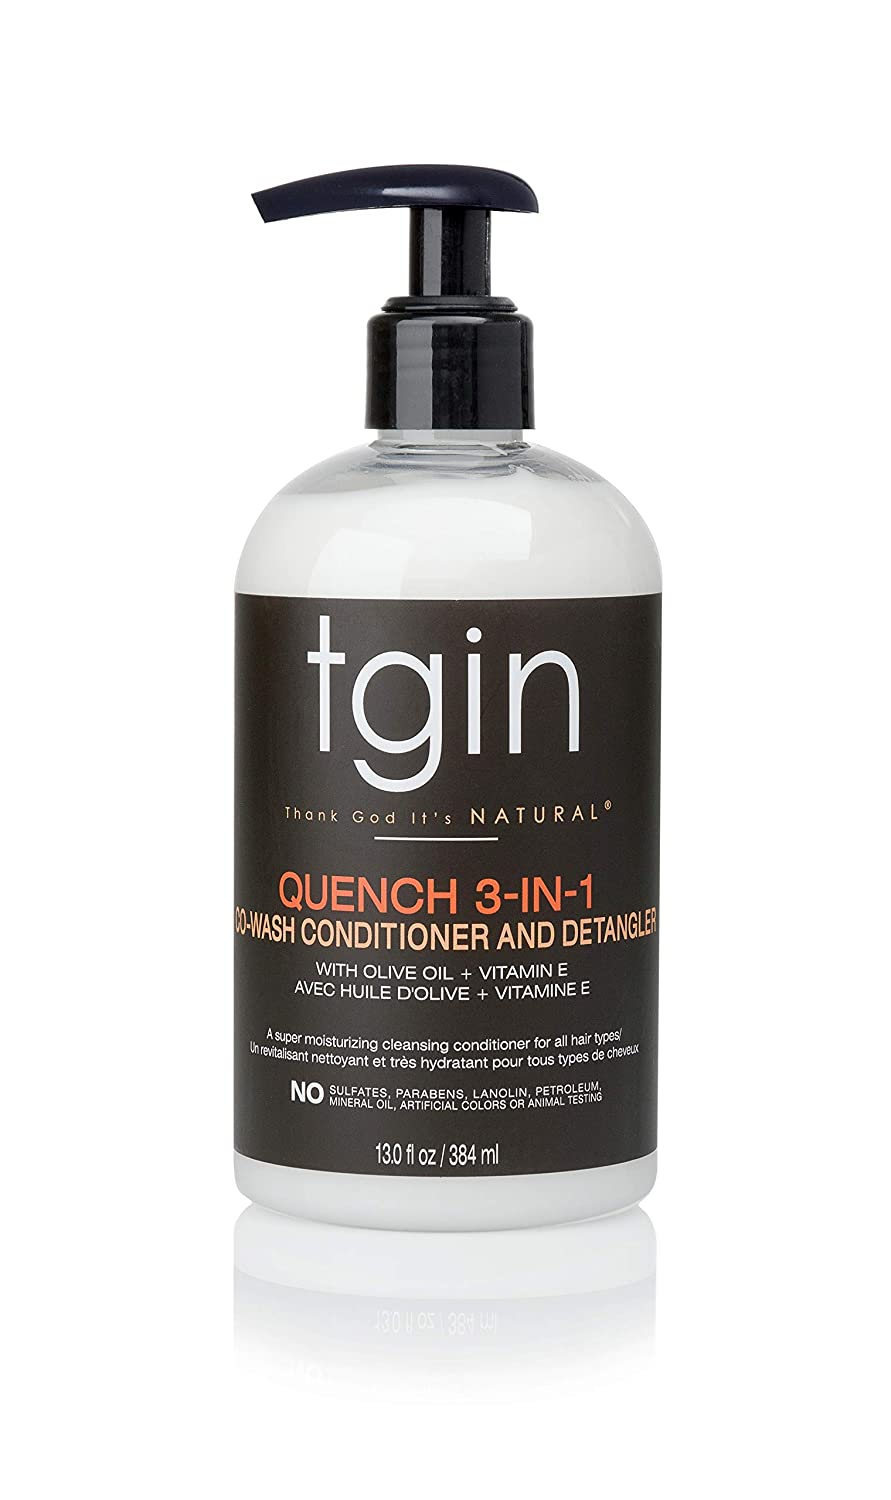 tgin Quench 3-in-1 Co-Wash Conditioner and Detangler For Dry Hair - Curly Hair - 13 Oz